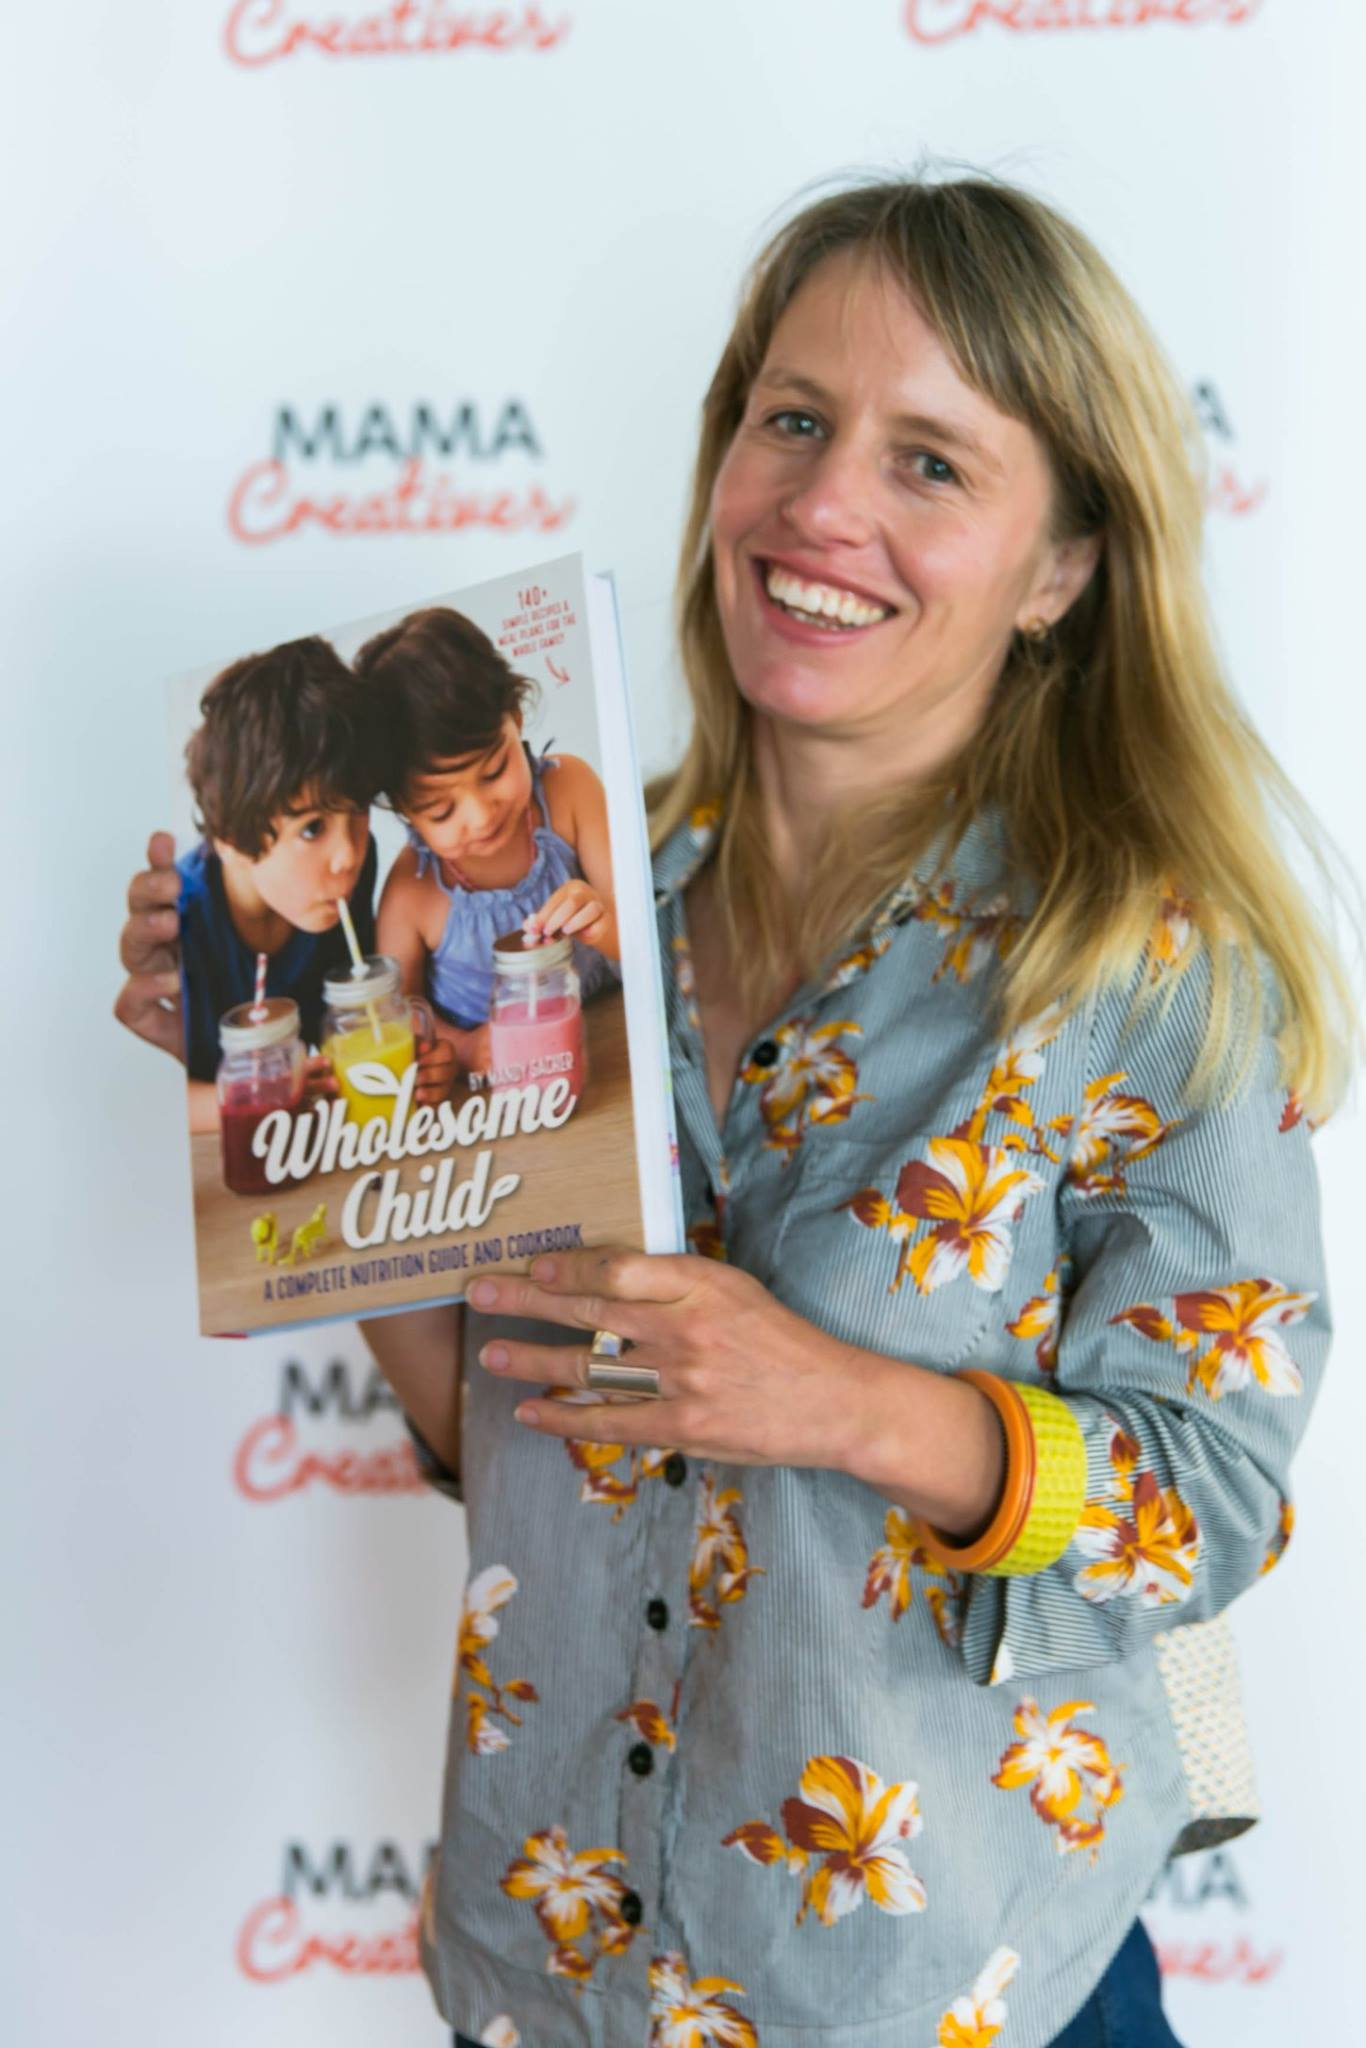 Congratulations to our lucky winner of this incredible book, 'Wholesome Child' donated by Mandy Sacher founder & author at Wholesome Child, for our Creative Mama Workshop in support of PANDA Awareness Week.   More details here: https://www.wholesomechild.com.au/mandys-book/